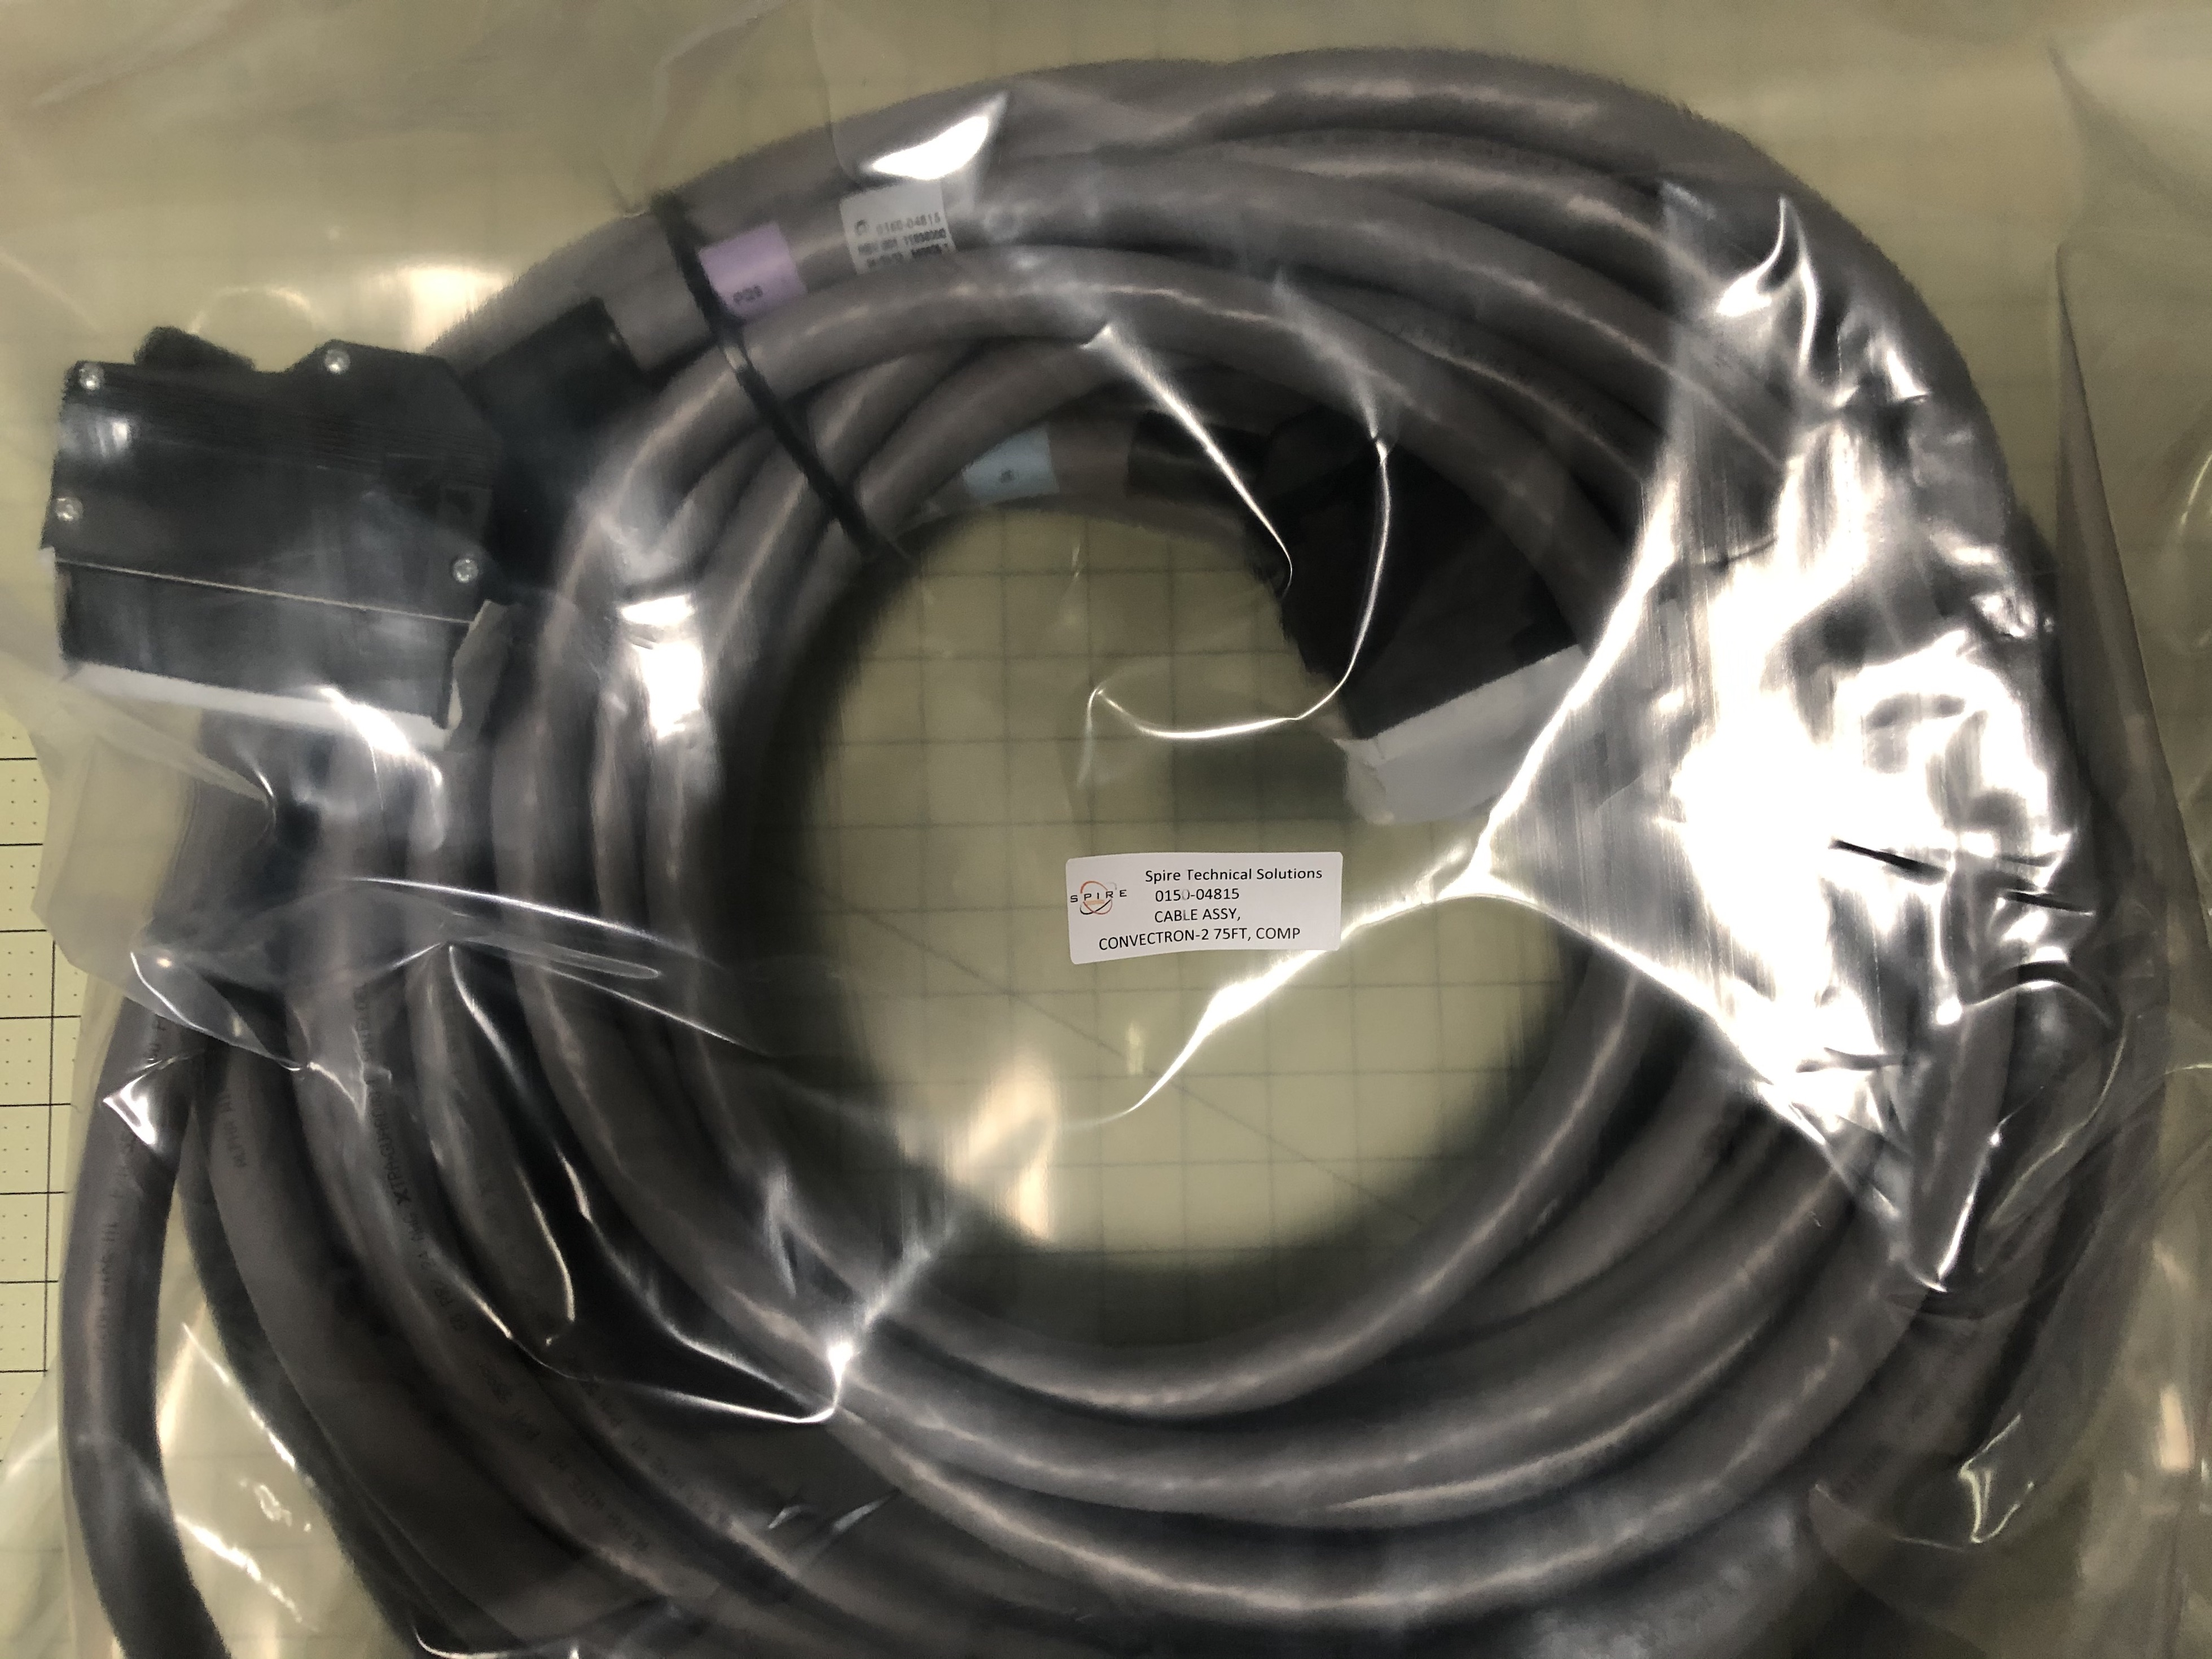 CABLE ASSY, CONVECTRON-2 75FT, COMP